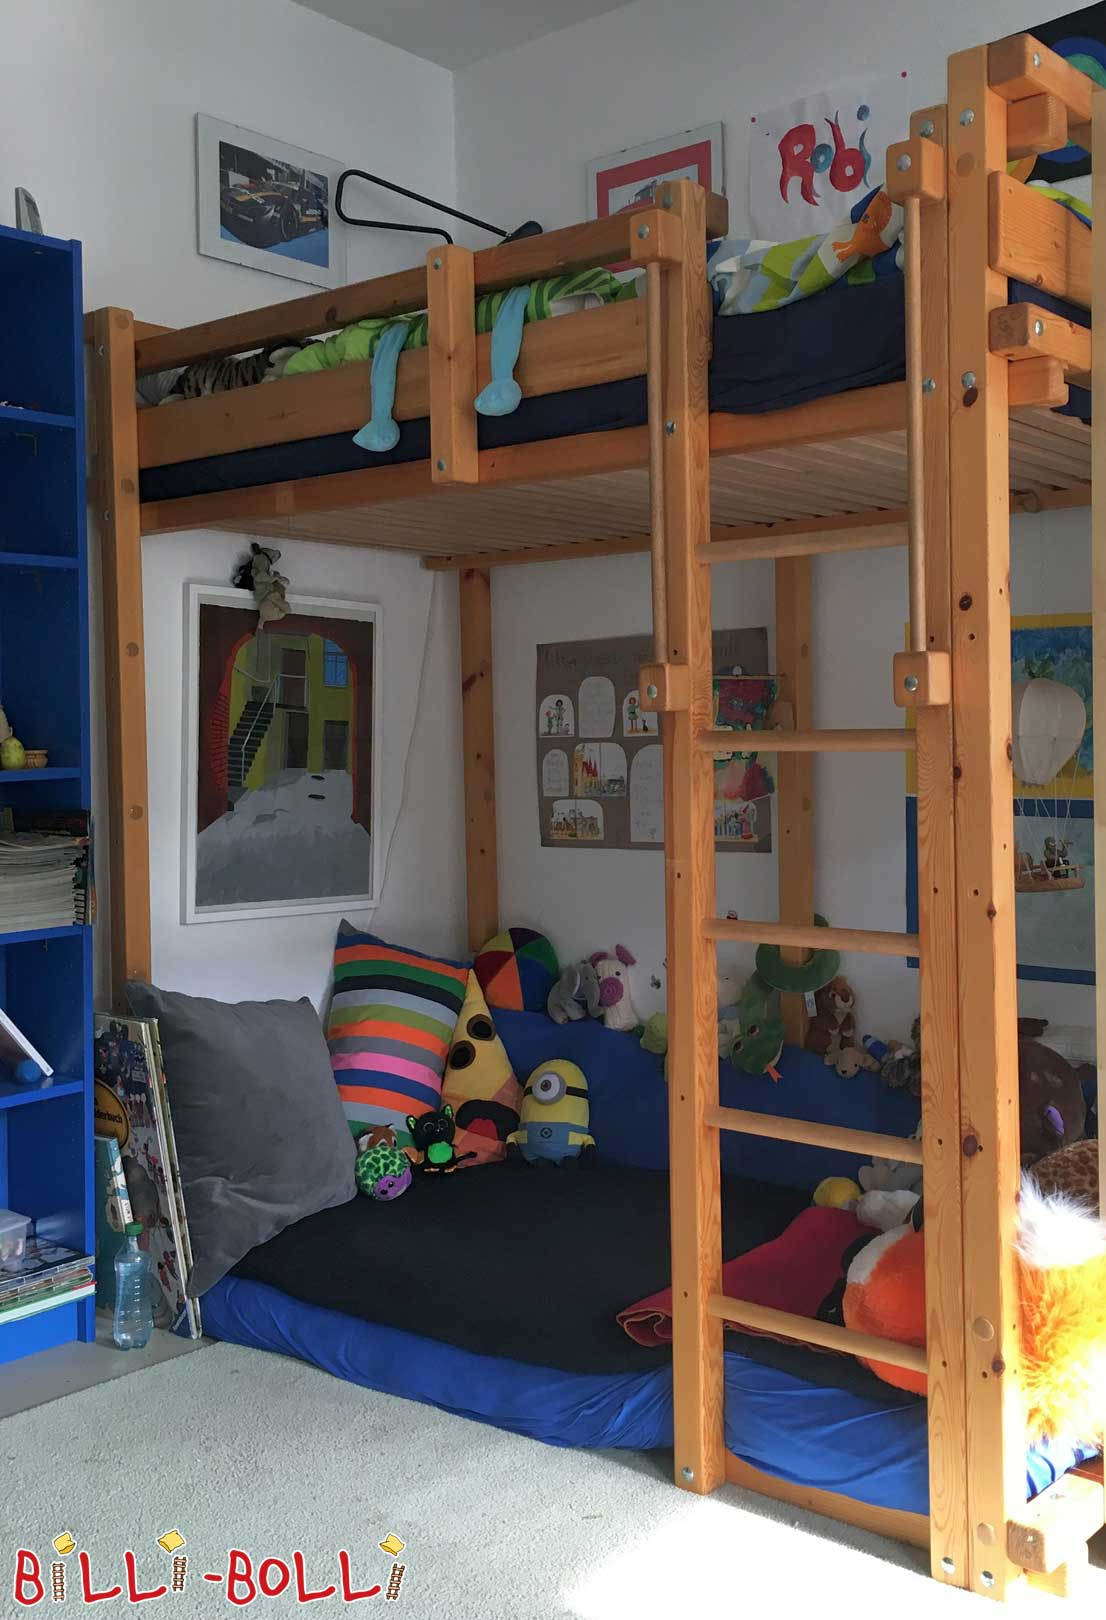 Youth high bed 90 x 200 cm with crane and swing (second hand loft bed)